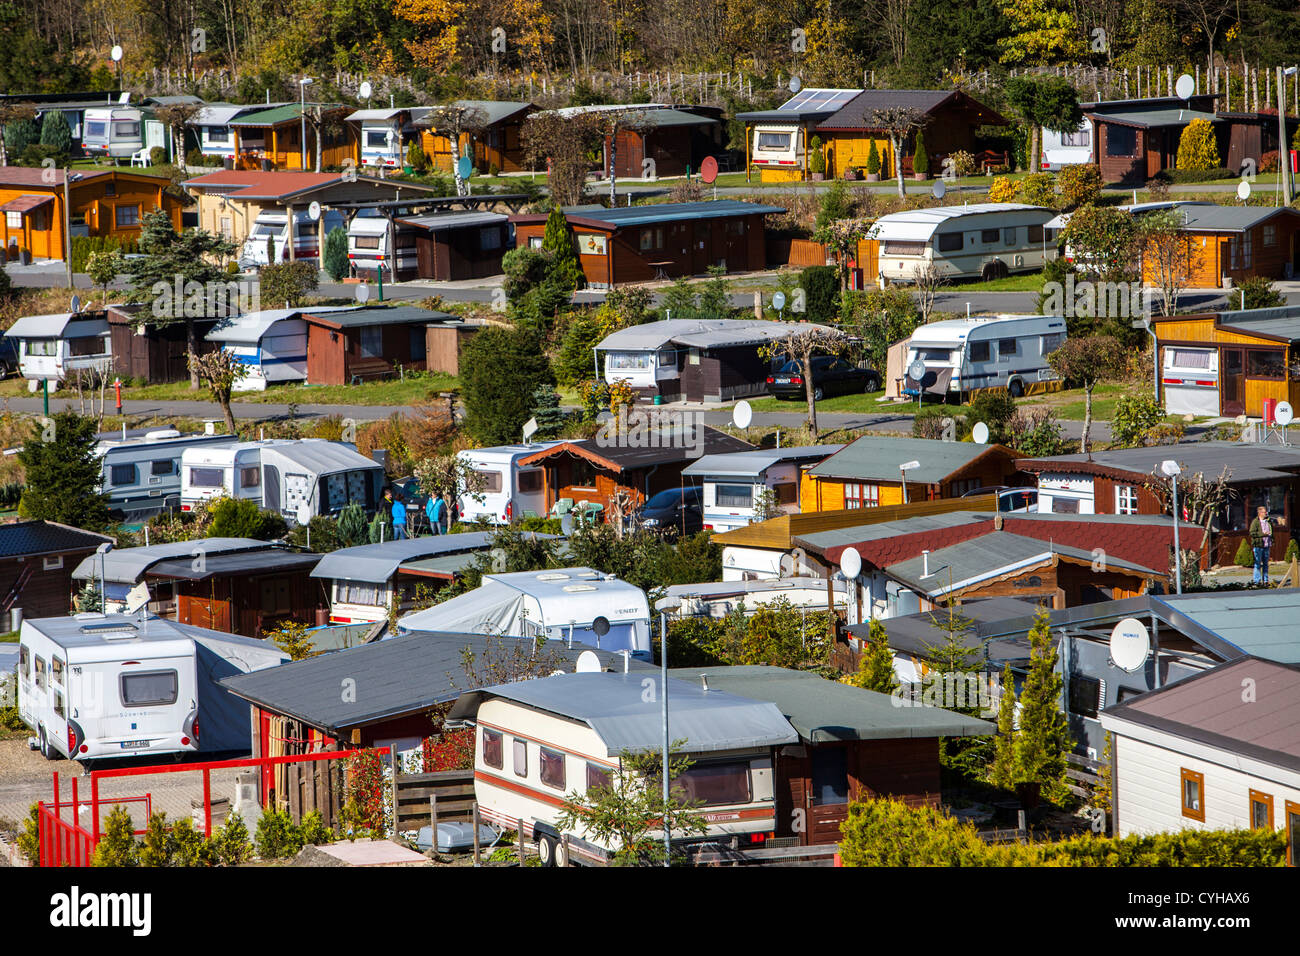 Trailer Parks In Deutschland